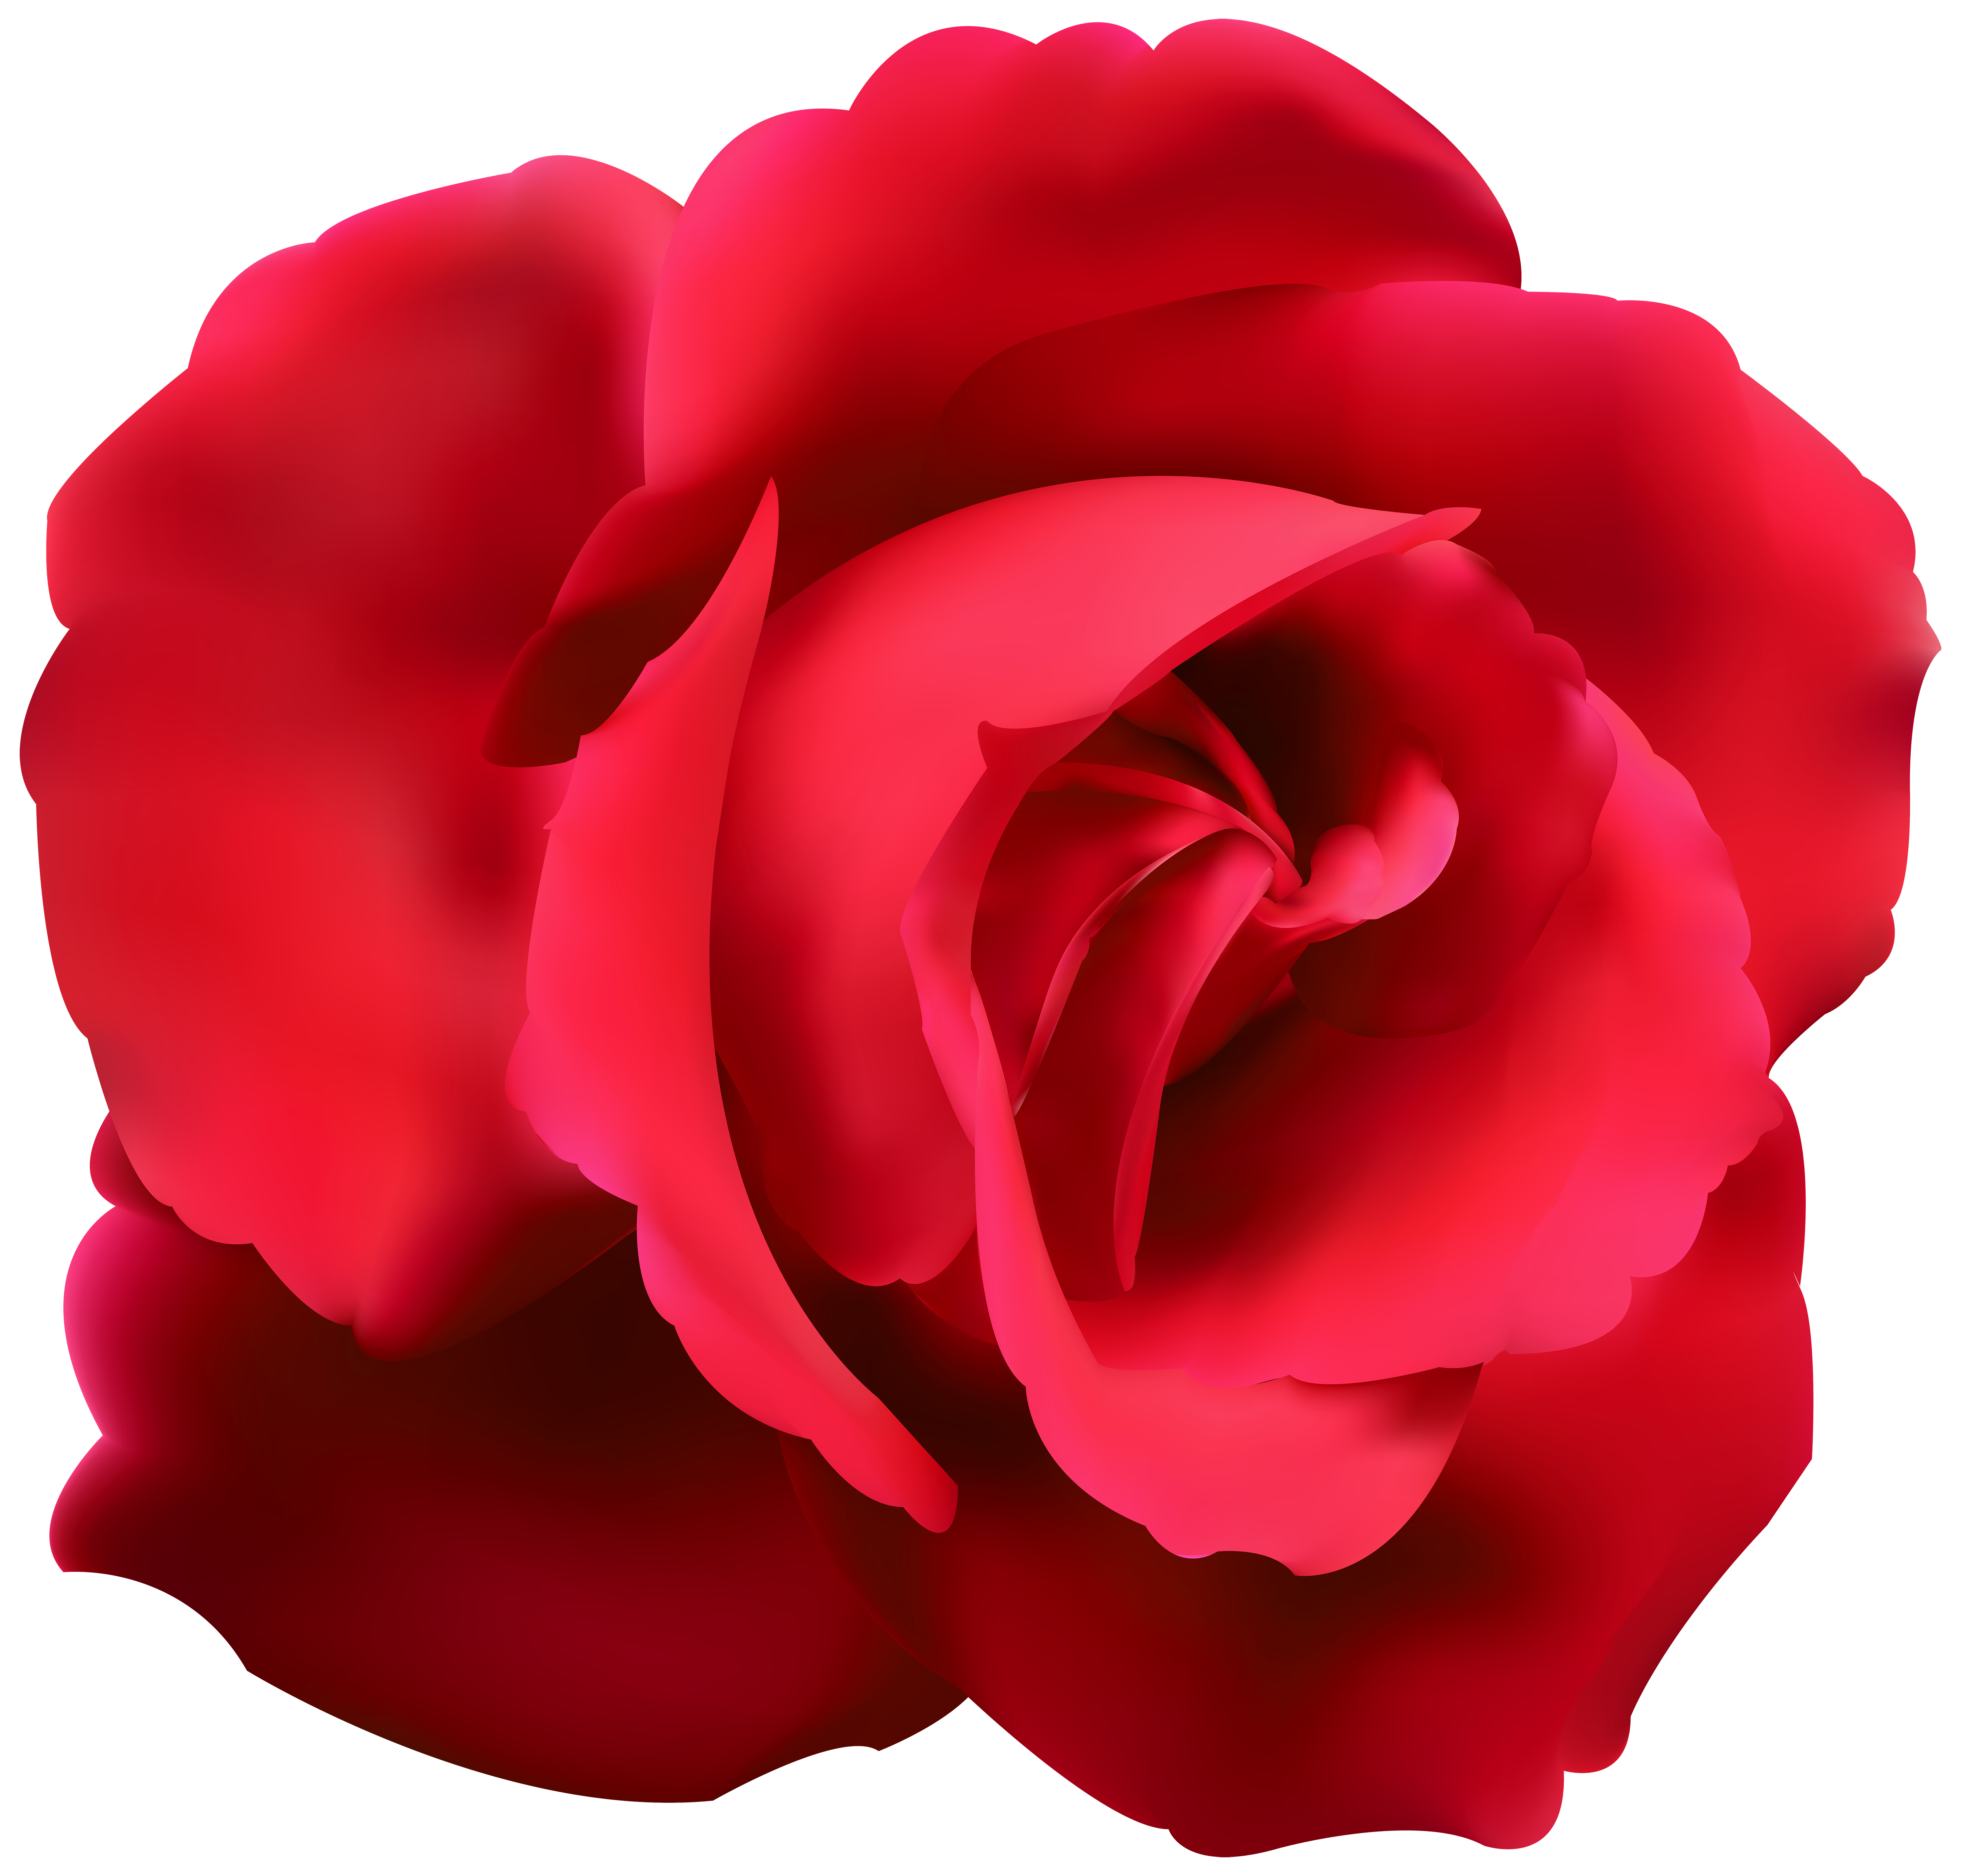 Rose clip art png. Families clipart red